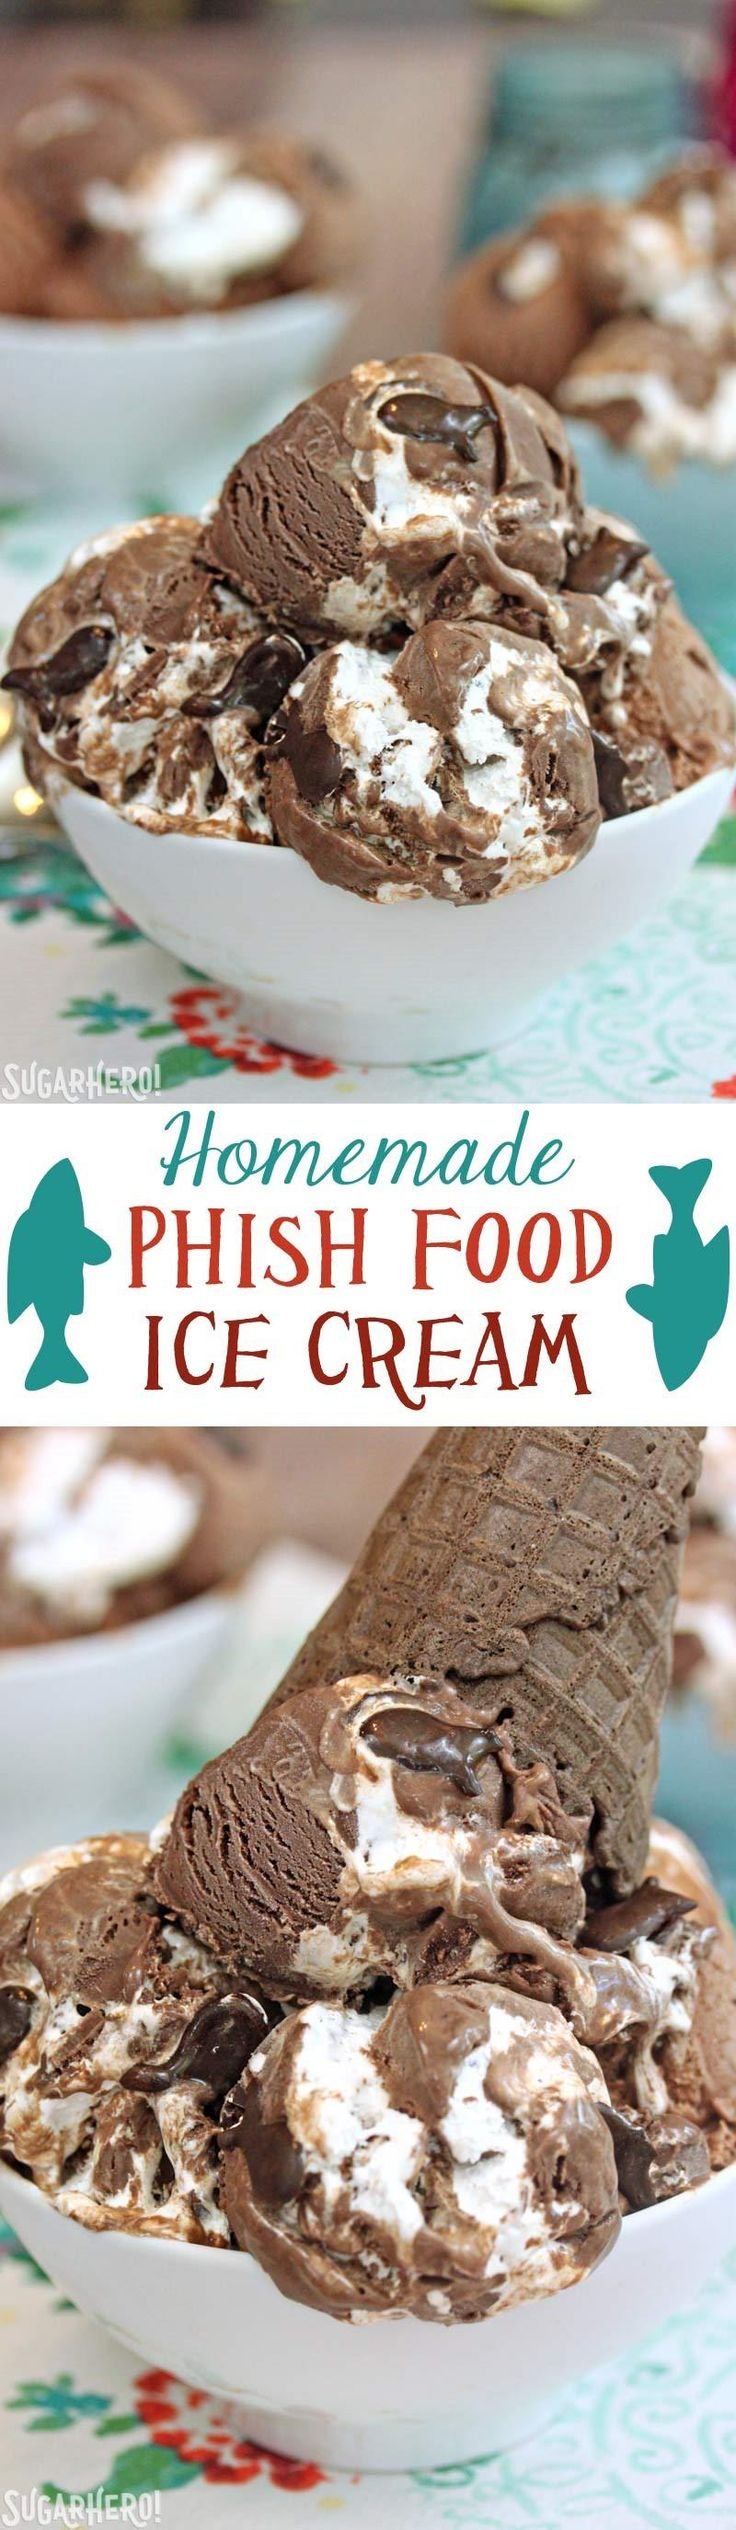 Homemade Phish Food Ice Cream - just like Ben & Jerry's! Chocolate ice cream, marshmallow and caramel swirls, and chocolate fish! | From SugarHero.com